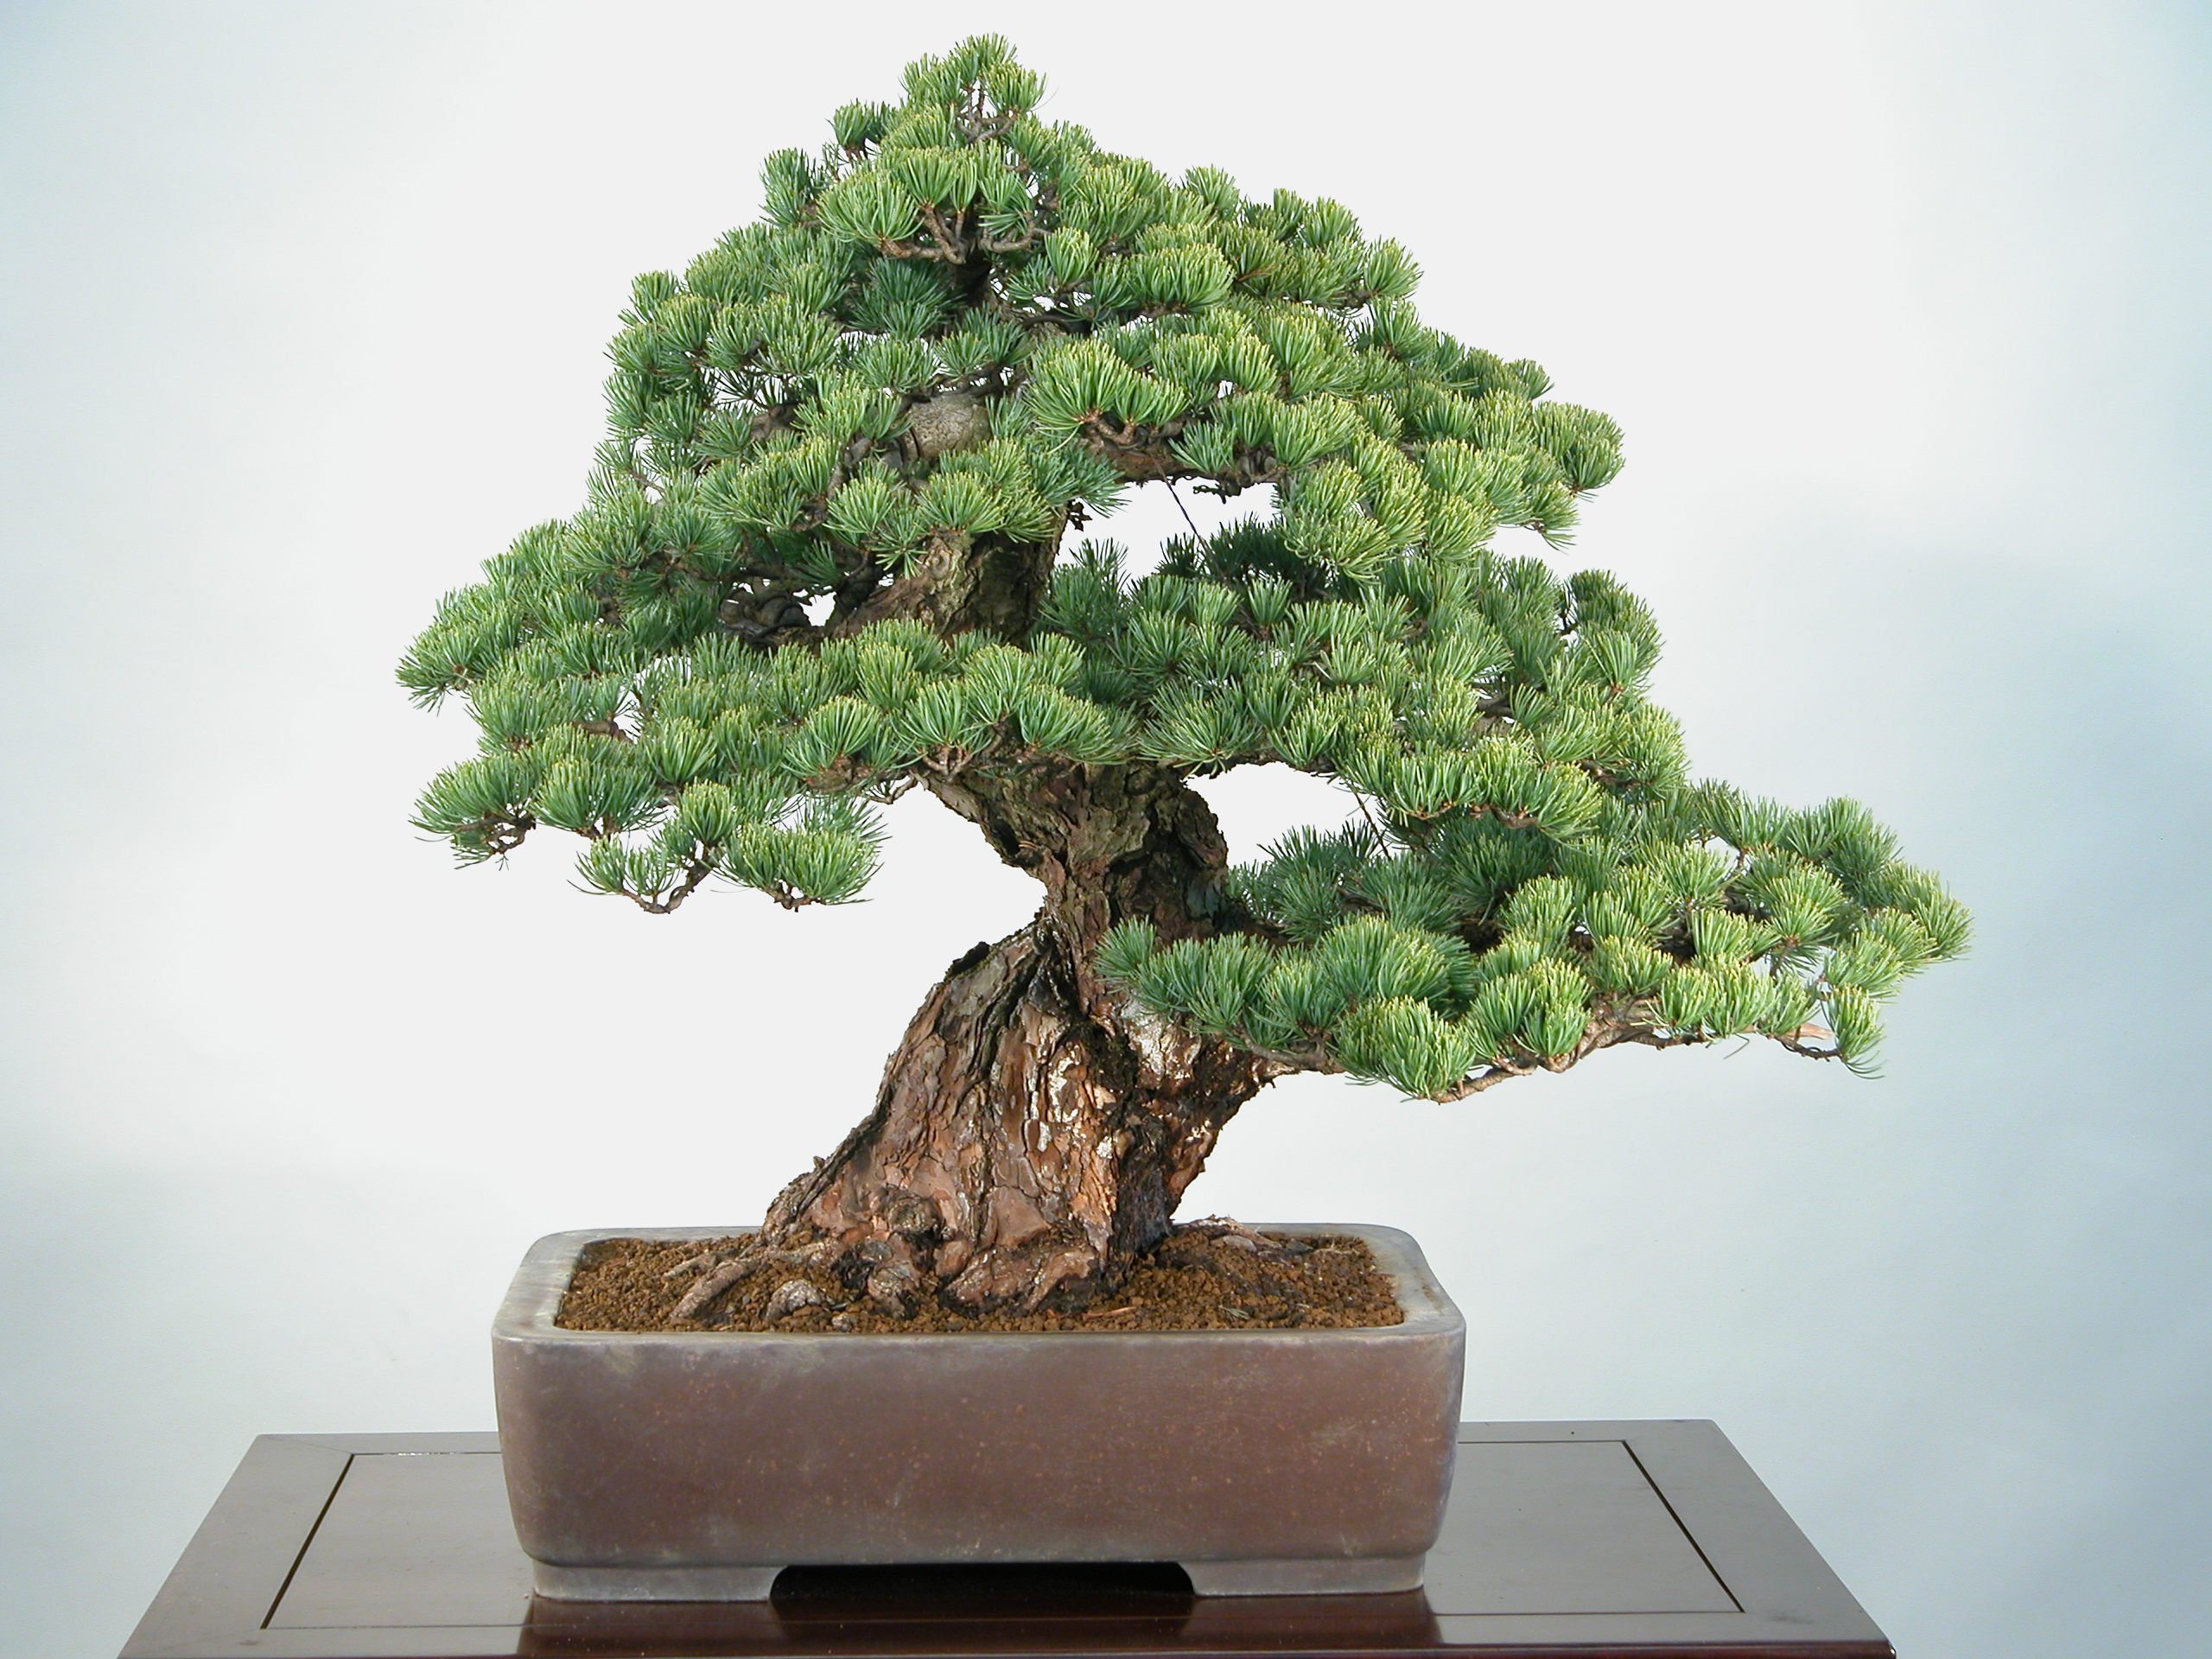 Moyogi galeria do estilo ereto informal aido bonsai - Plantas para bonsai ...